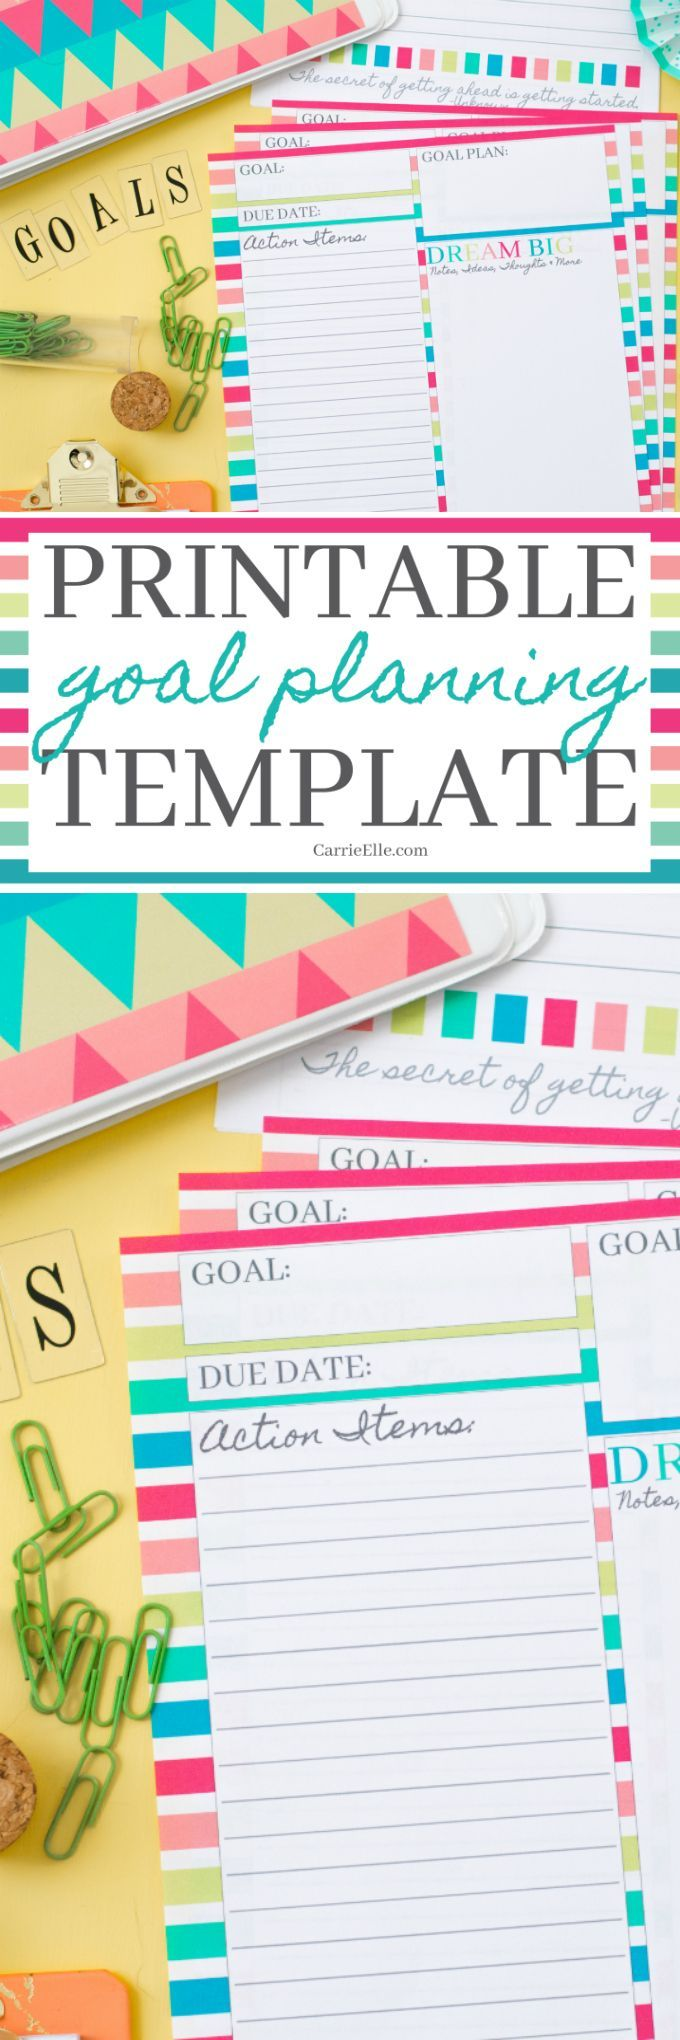 Free Printable Goal Planning Template  This Is A Great Way To Lay